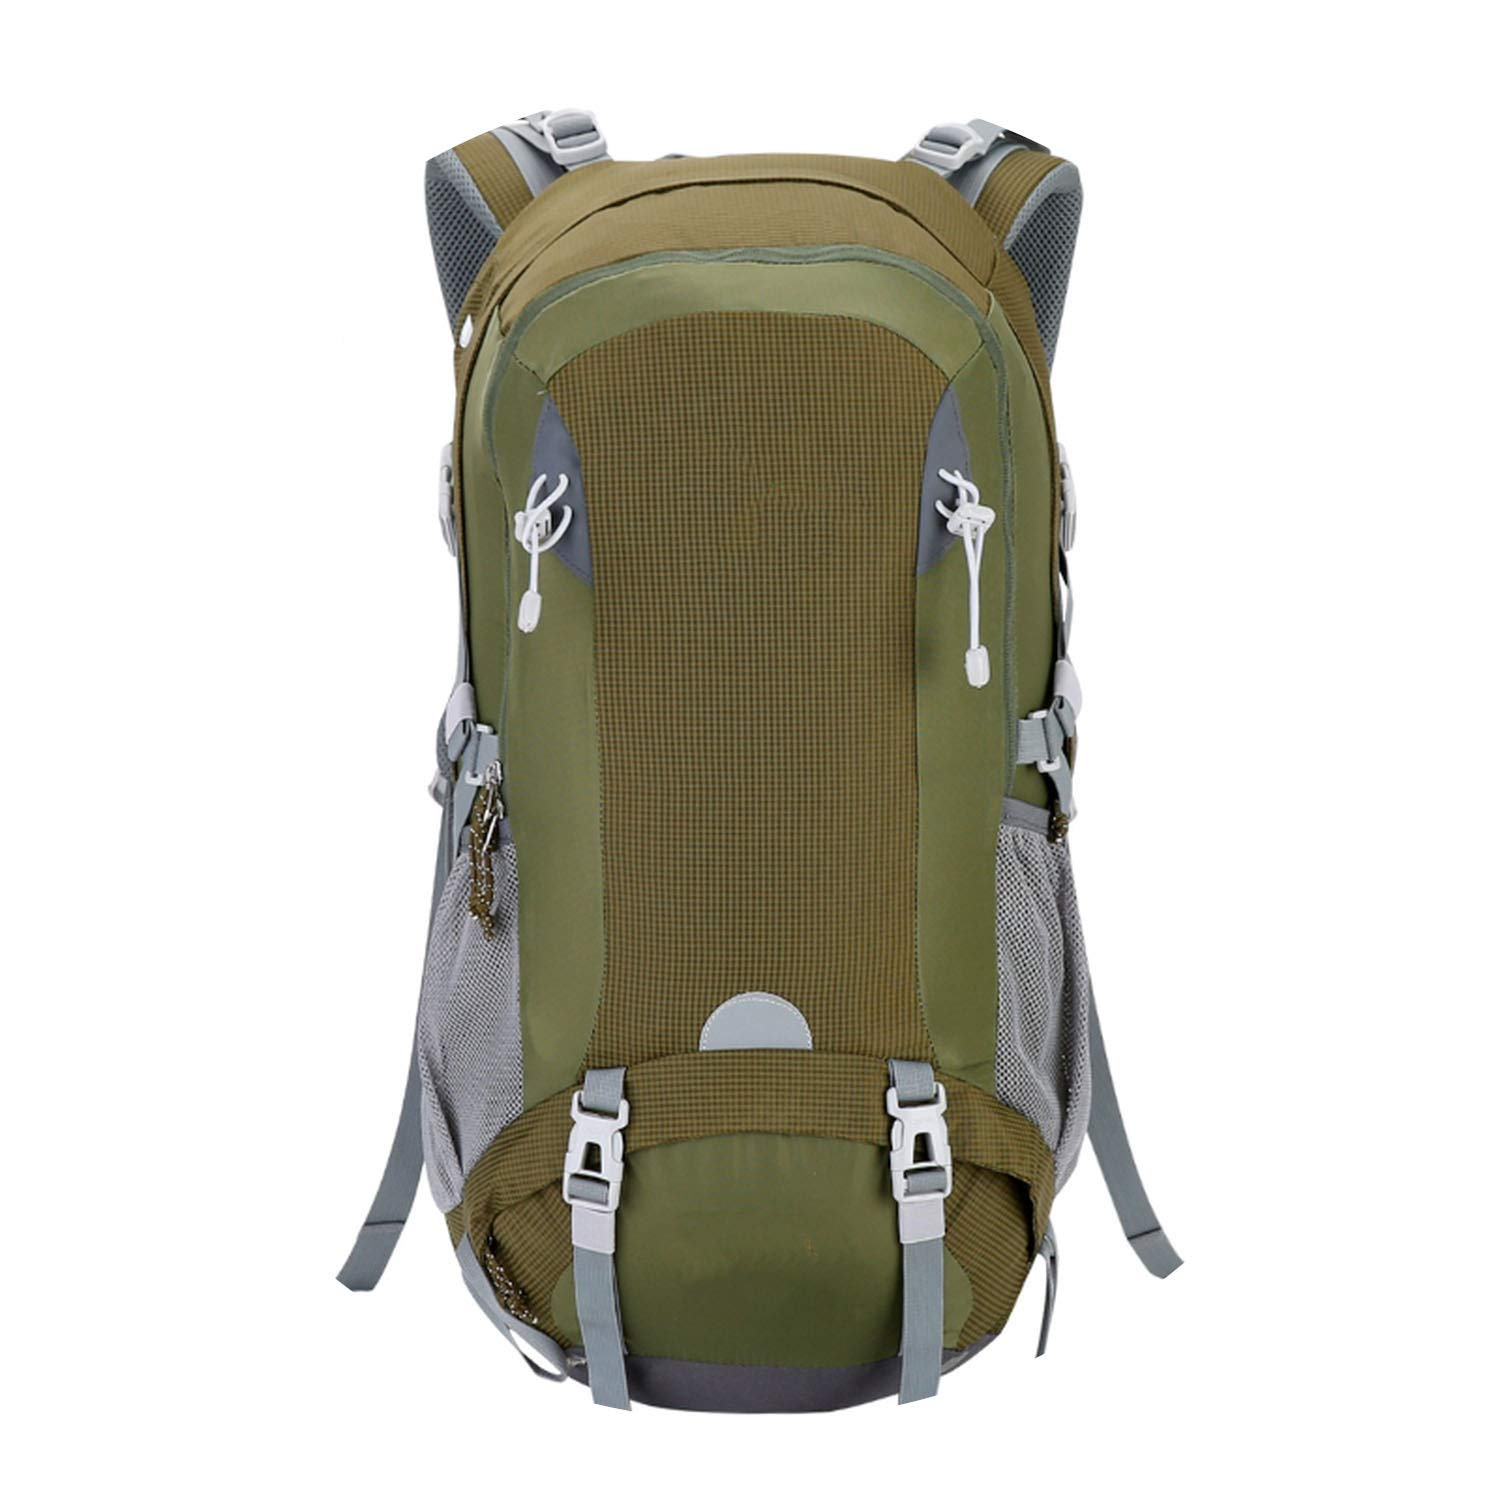 Camping Bag Mountaineering Backpack Waterproof Light Weight Sports BagFor Hiking KCB4231,Gain 423123002,China